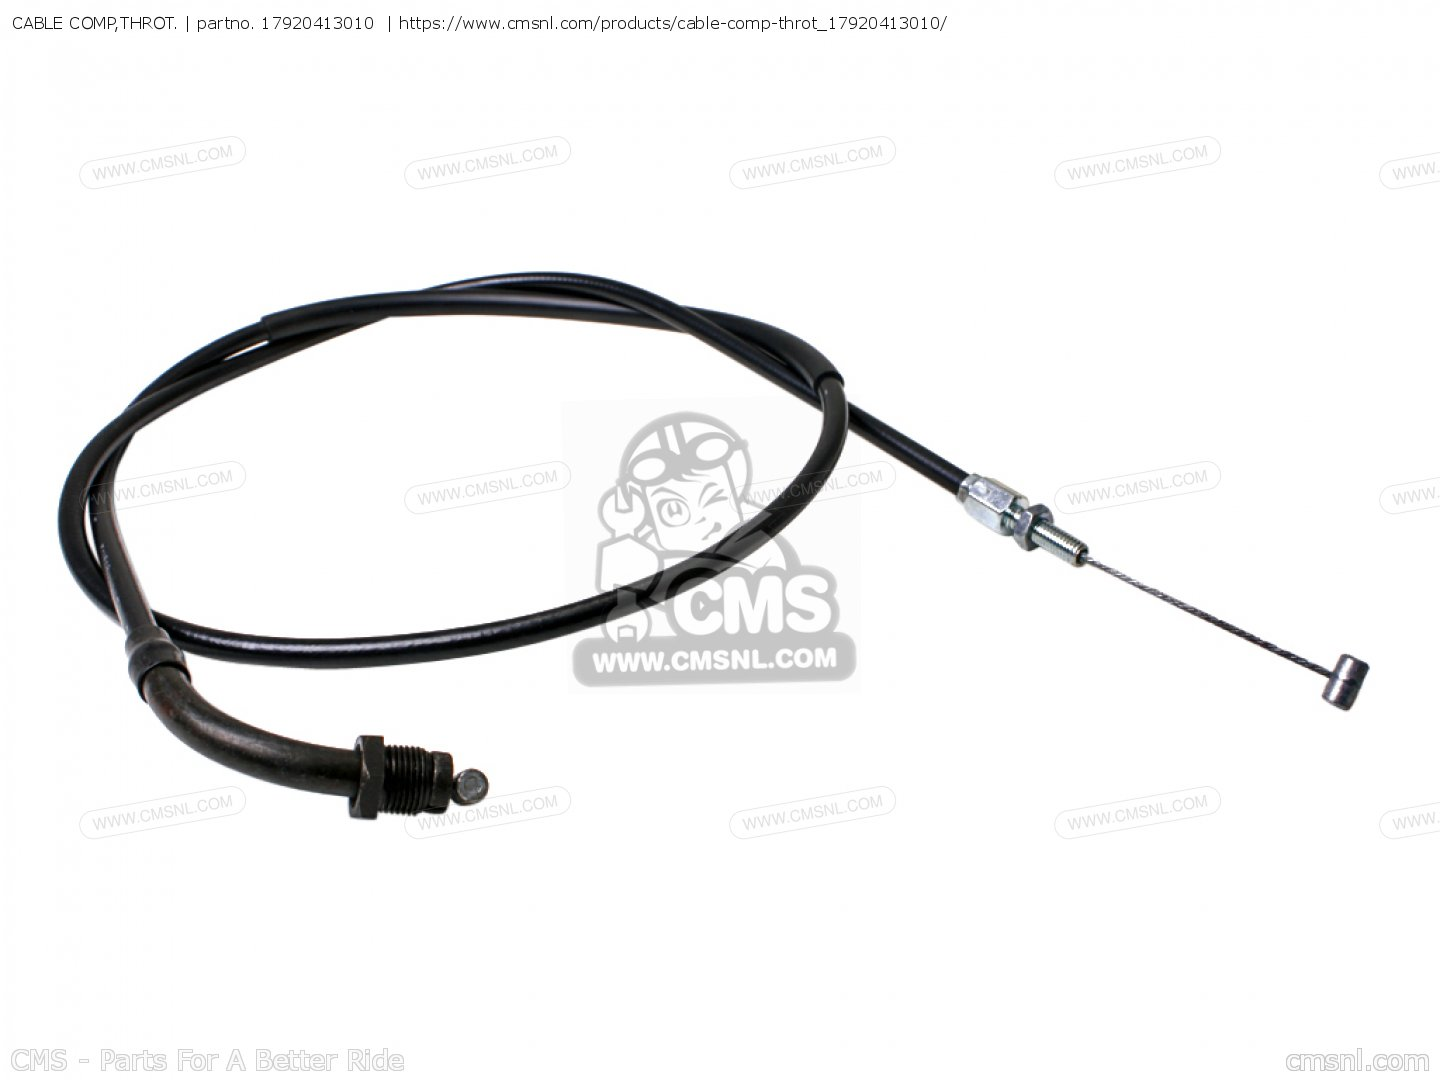 (17920415010) Cable Comp,throt. Cm400a Hondamatic 1980 (a